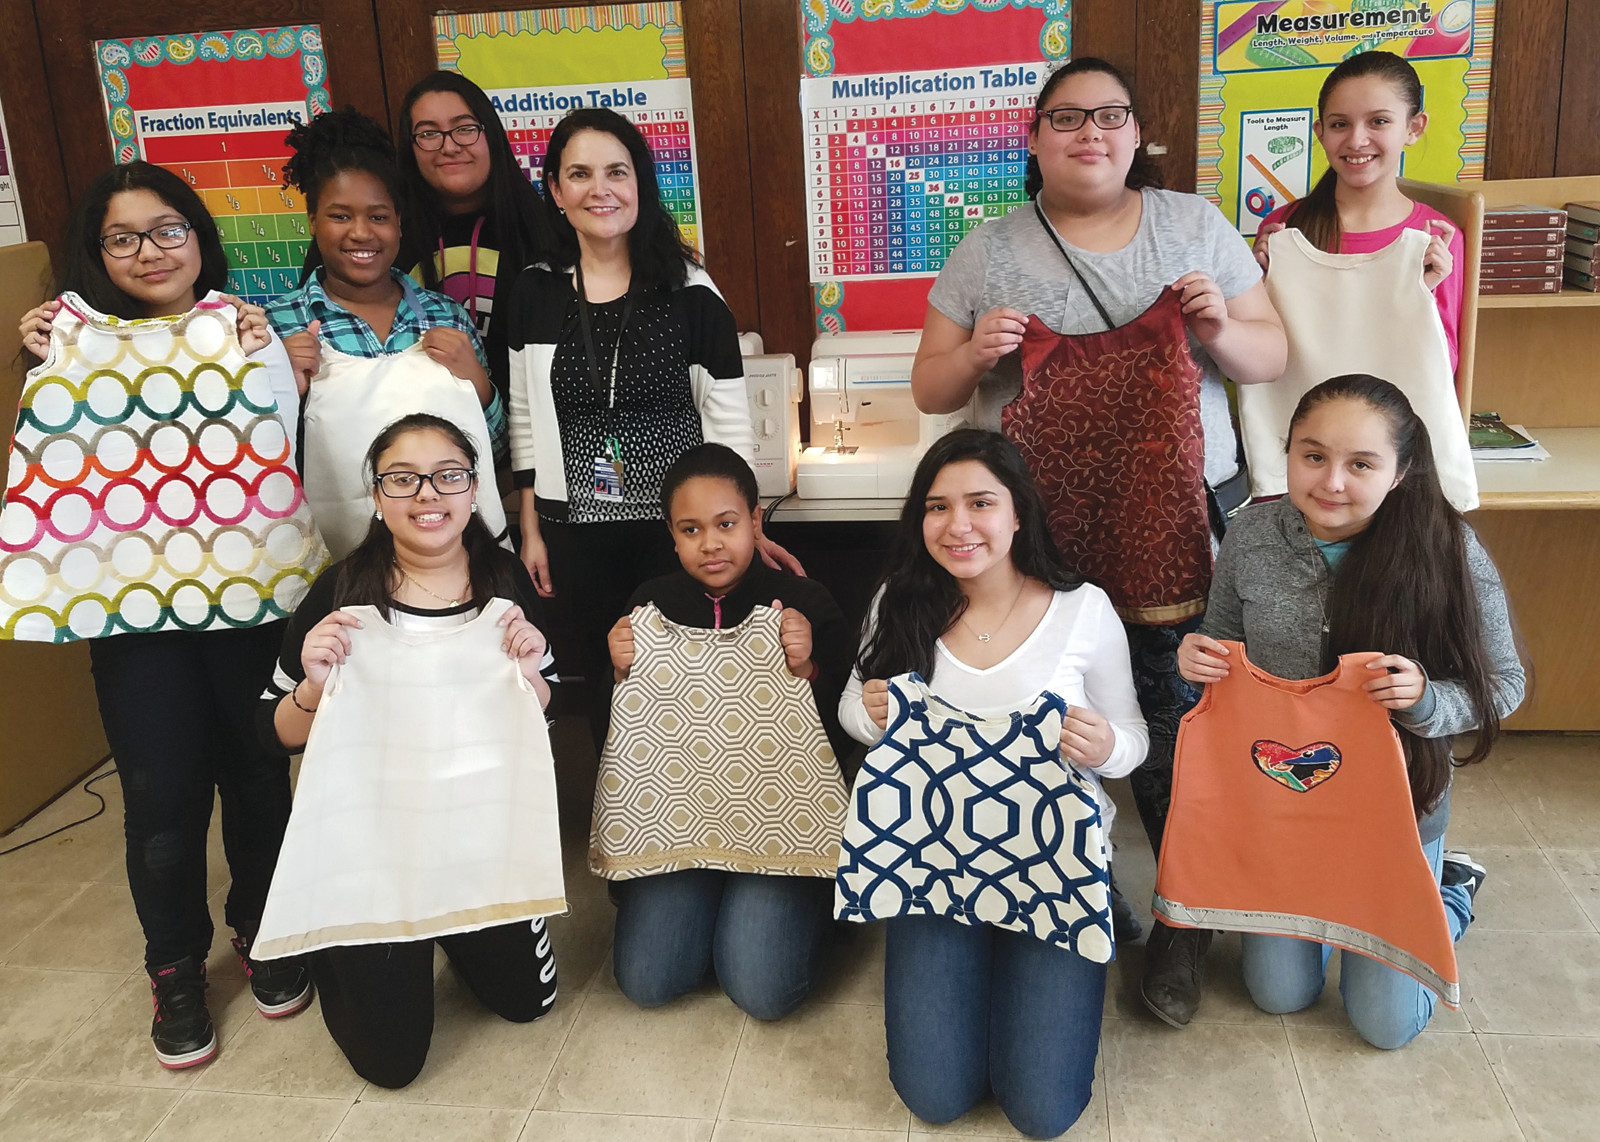 LEARNING SKILLS THAT WILL HELP OTHERS: Pictured with their machines and some current clothing projects are some of the Sew Bain club members, along with their advisor, Rachel Bousquet and club volunteer, Naraly Barrious. The members of the club are Vashani Auguste, Diana Custodio, Abrina Estrada, Abby Morales, Brianna Munrayos, Jamie O'Brien, Leslie Pineda, Luz Marie Plasencia, Stacey Rios, Claudianna Rocher and Adia Sarr.